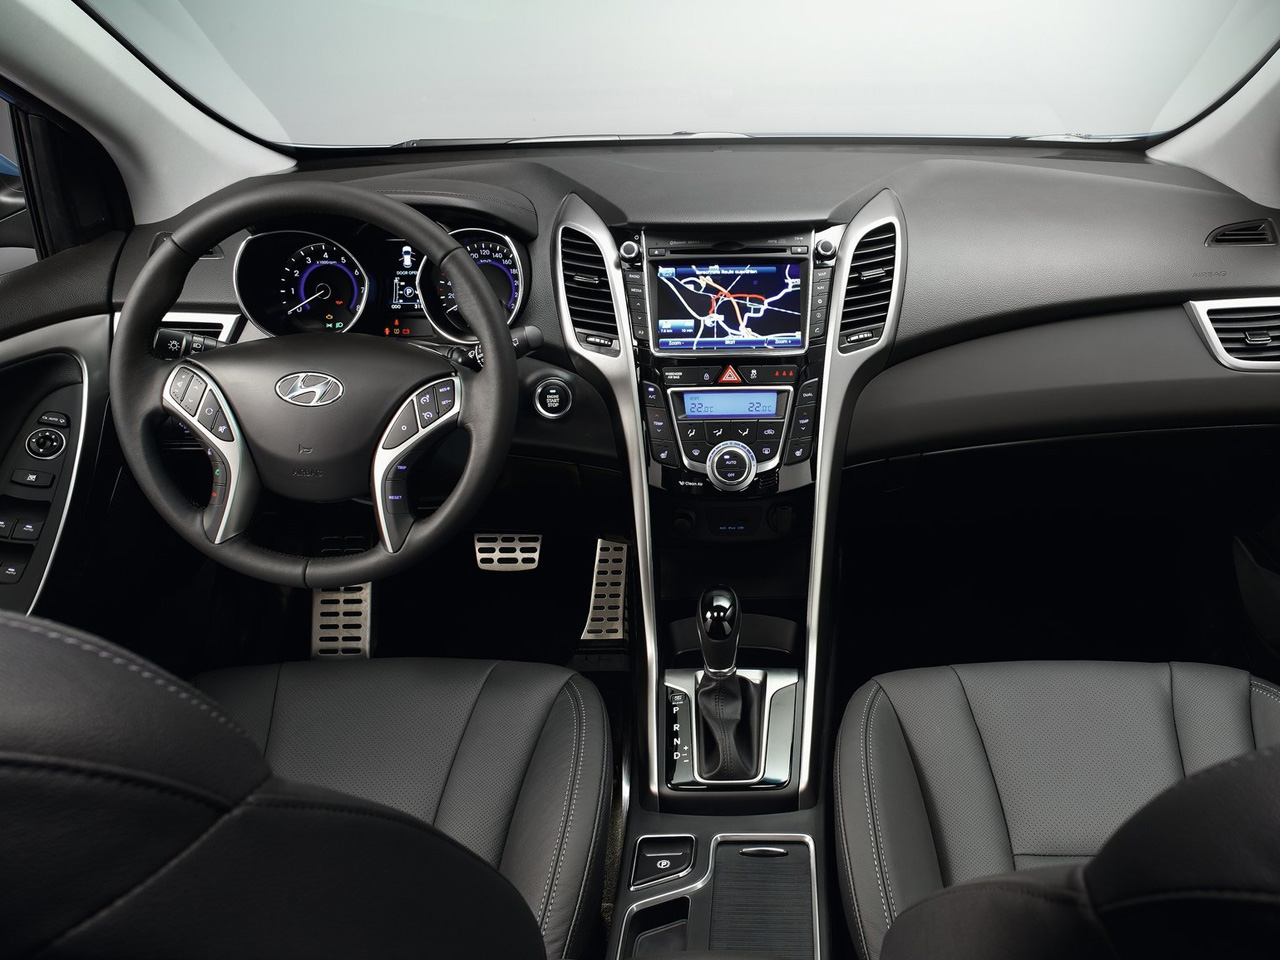 adorable-design-of-the-black-and-silver-accents-ideas-with-black-seats-ideas-as-the-hyundai-i30-2015-interior-ideas